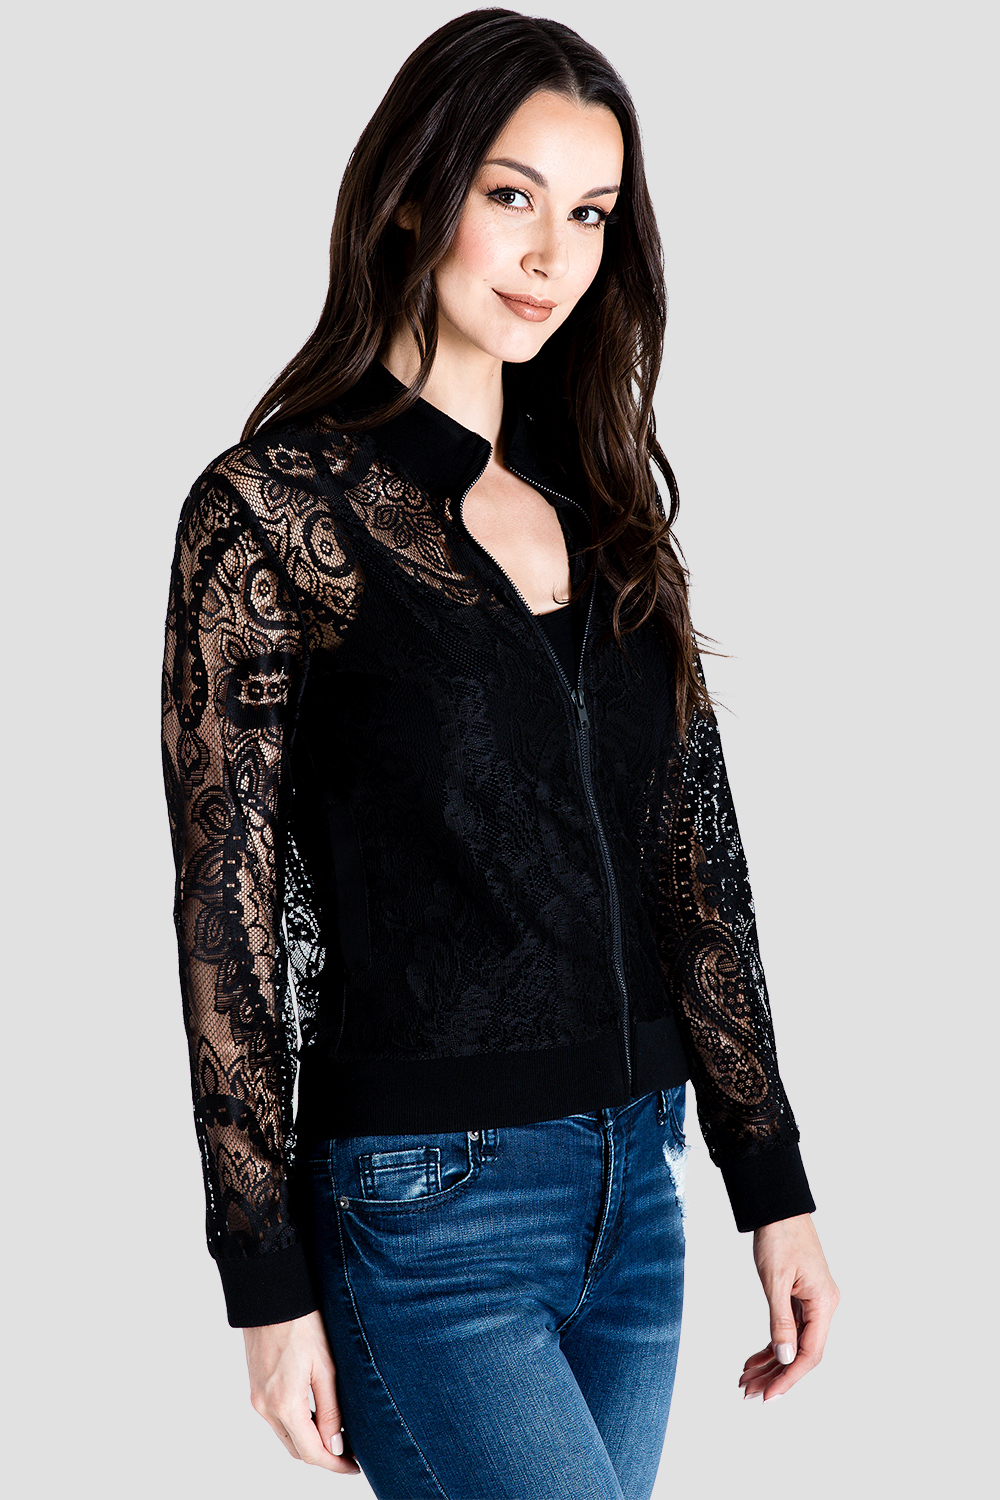 Standards & Practices Women's Peek-A-Boo Black Lace Bomber Jacket